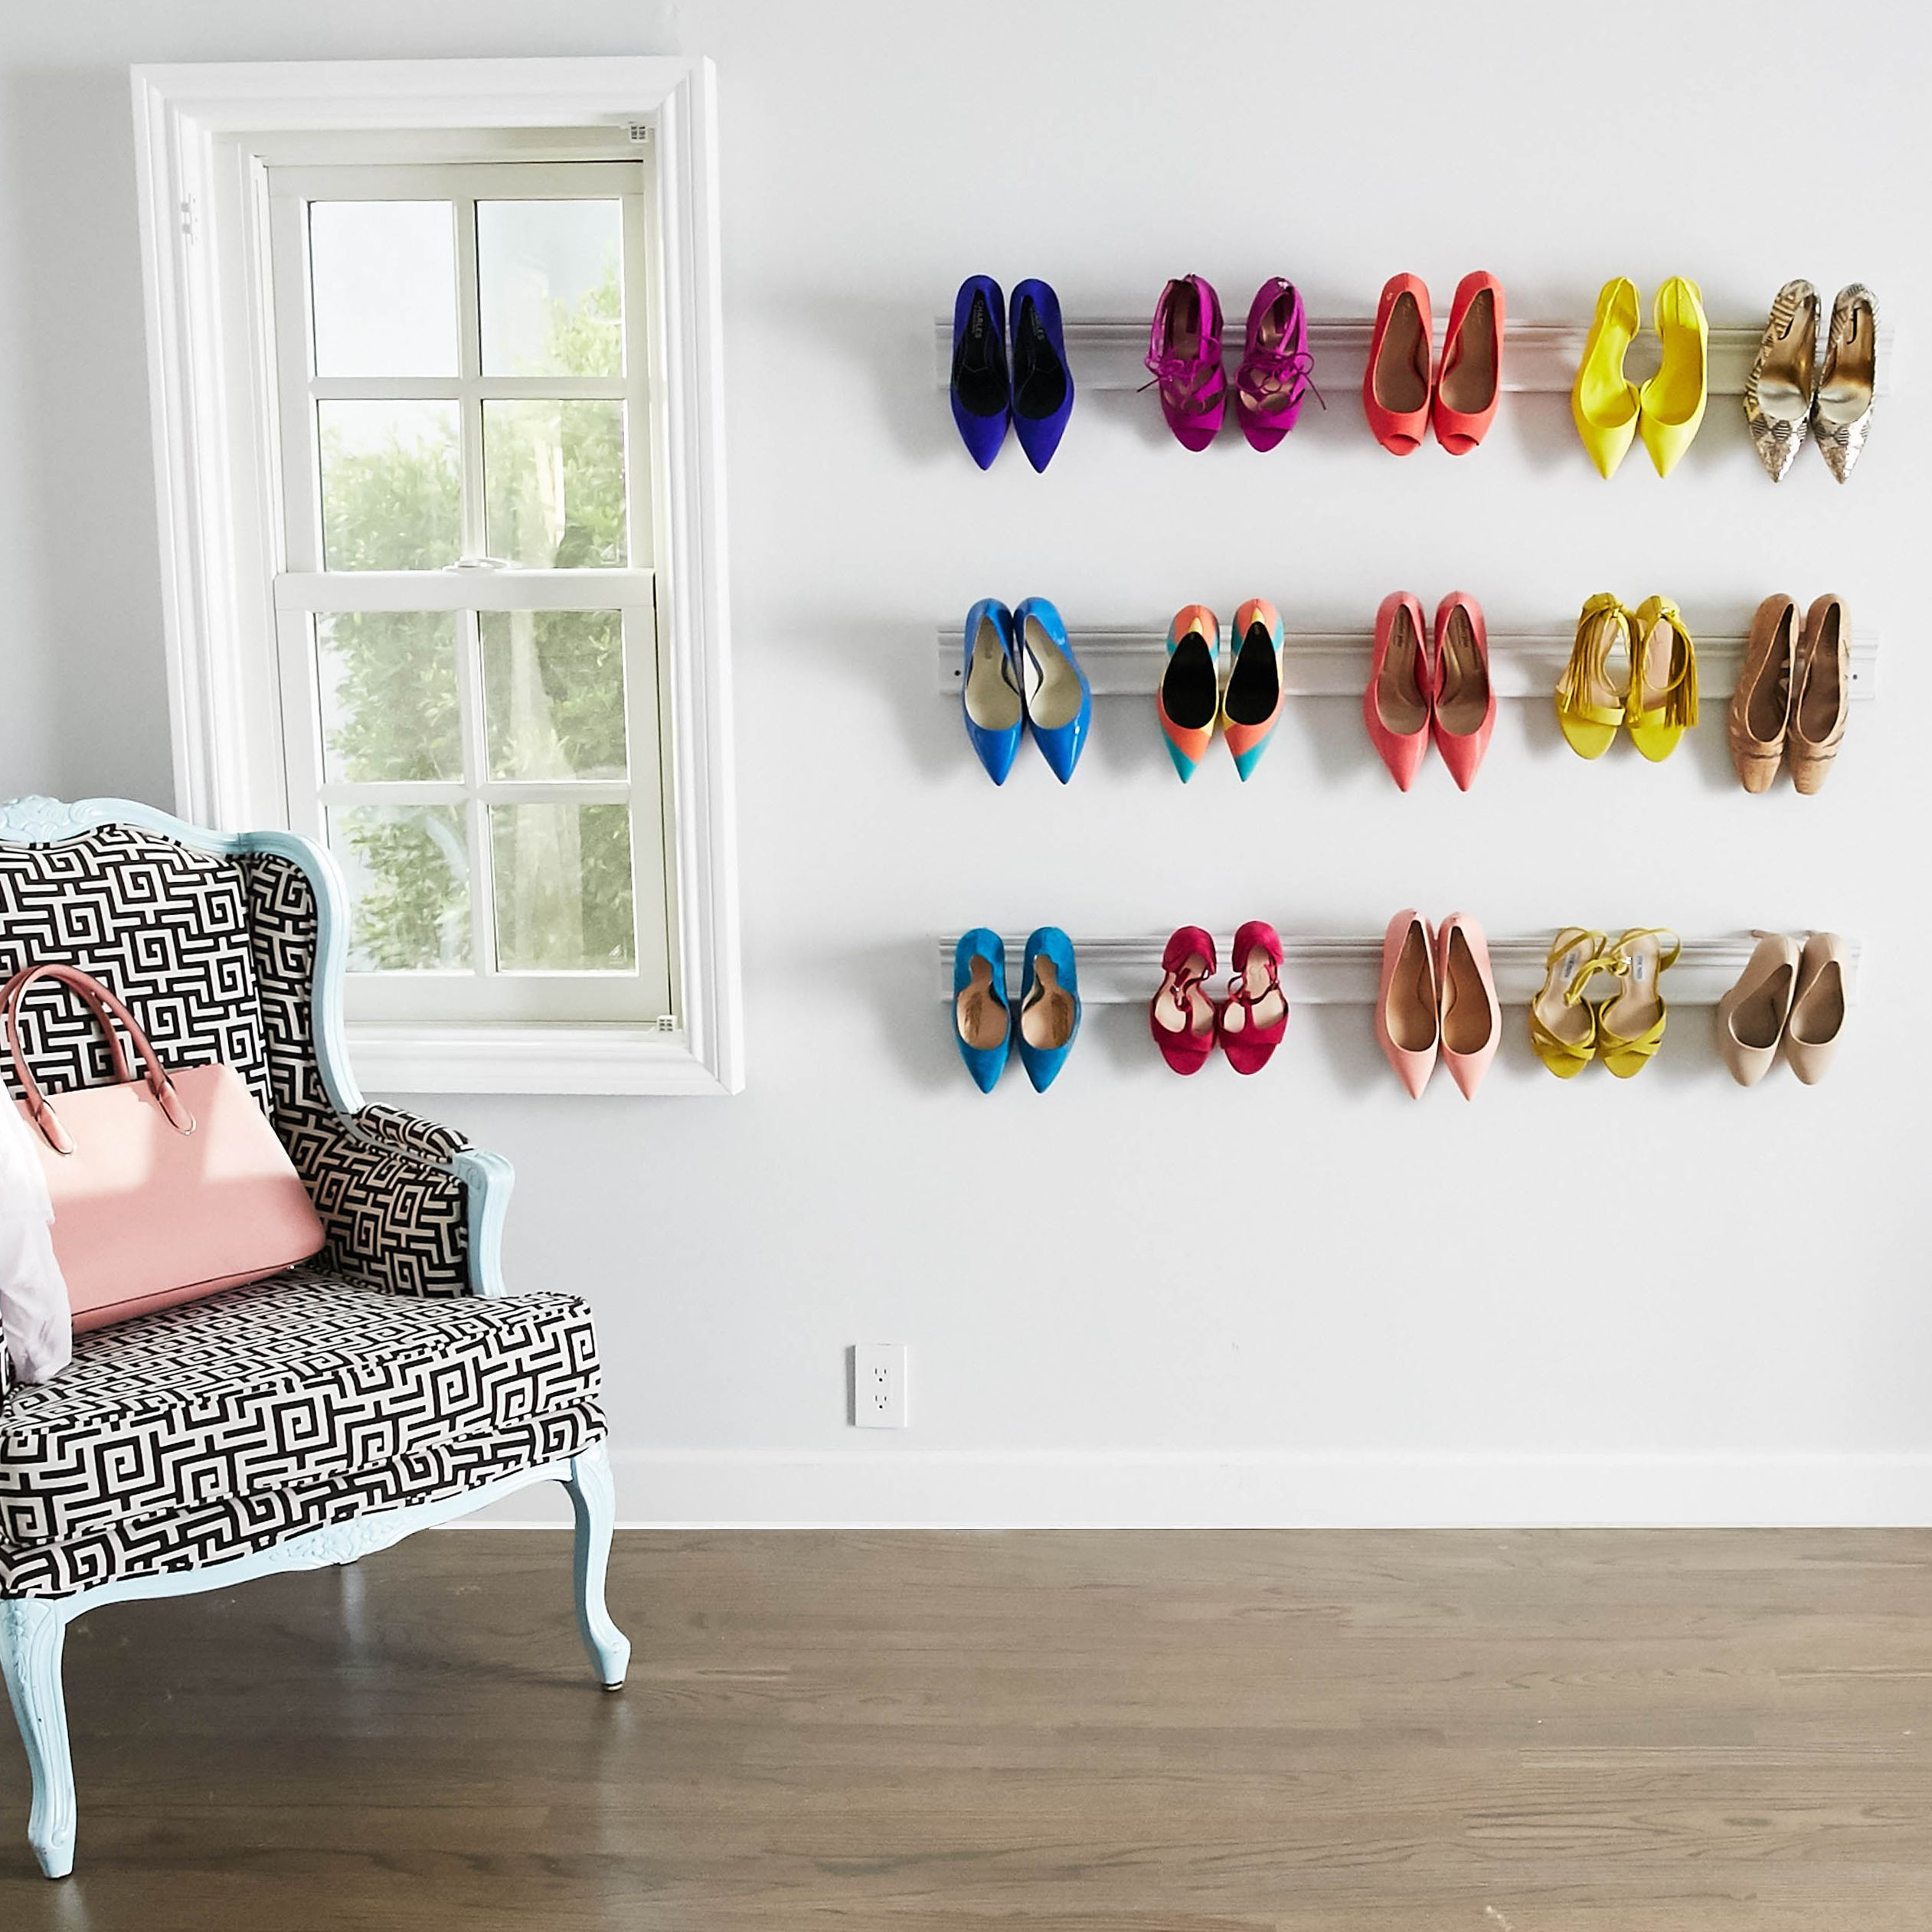 Diy wall mounted shoe rack wall mounted shoe rack shoe for Diy wall shelves for shoes